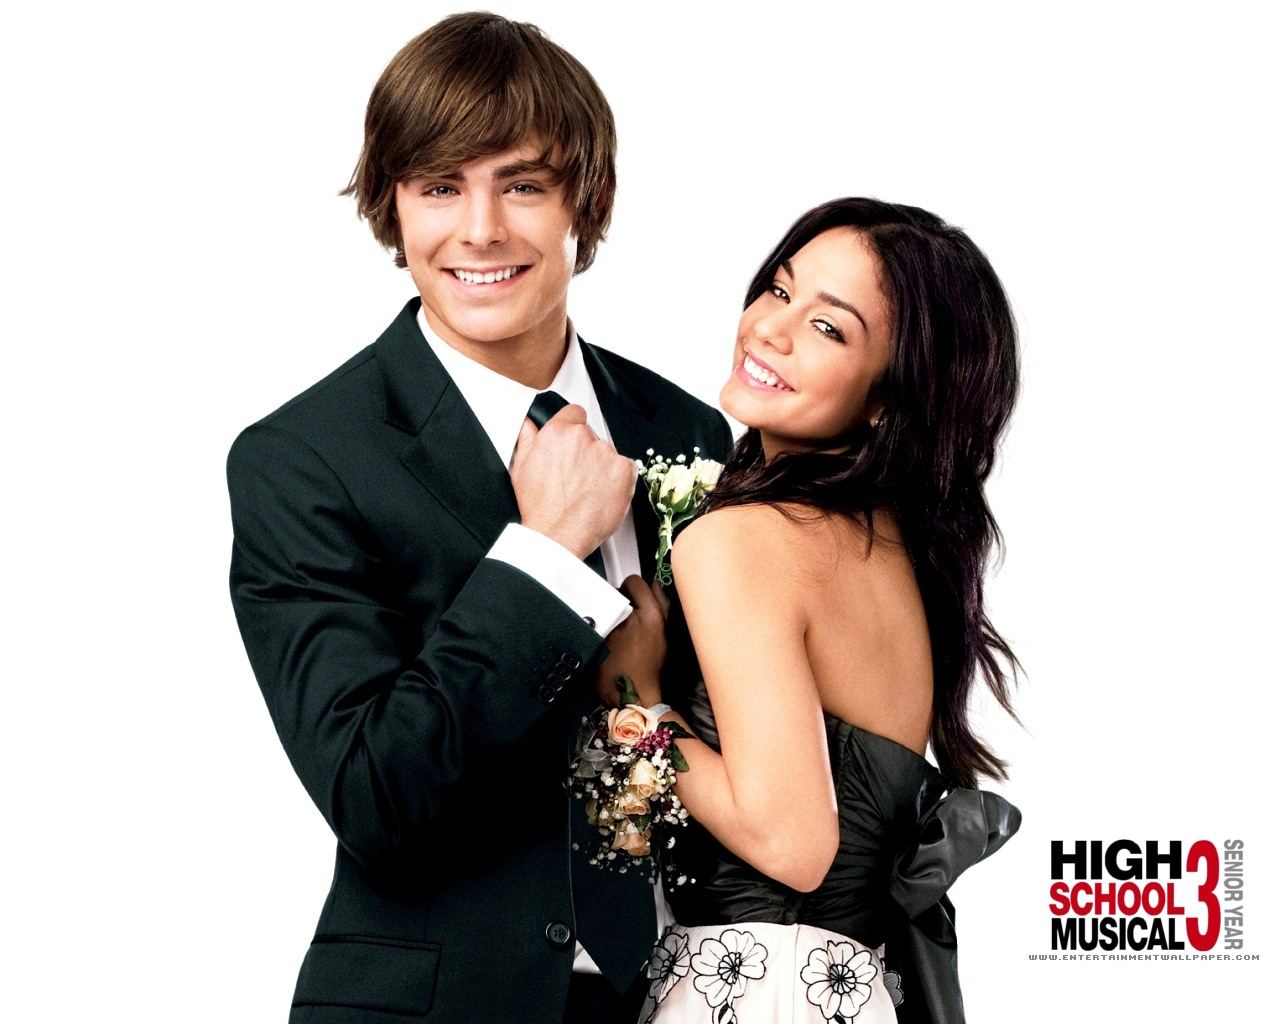 is troy and gabriella dating With the 10 year anniversary of high school musical's debut release, it's only fitting that we take a look back at our favourite moments from the films, in particular, troy and gabriella.